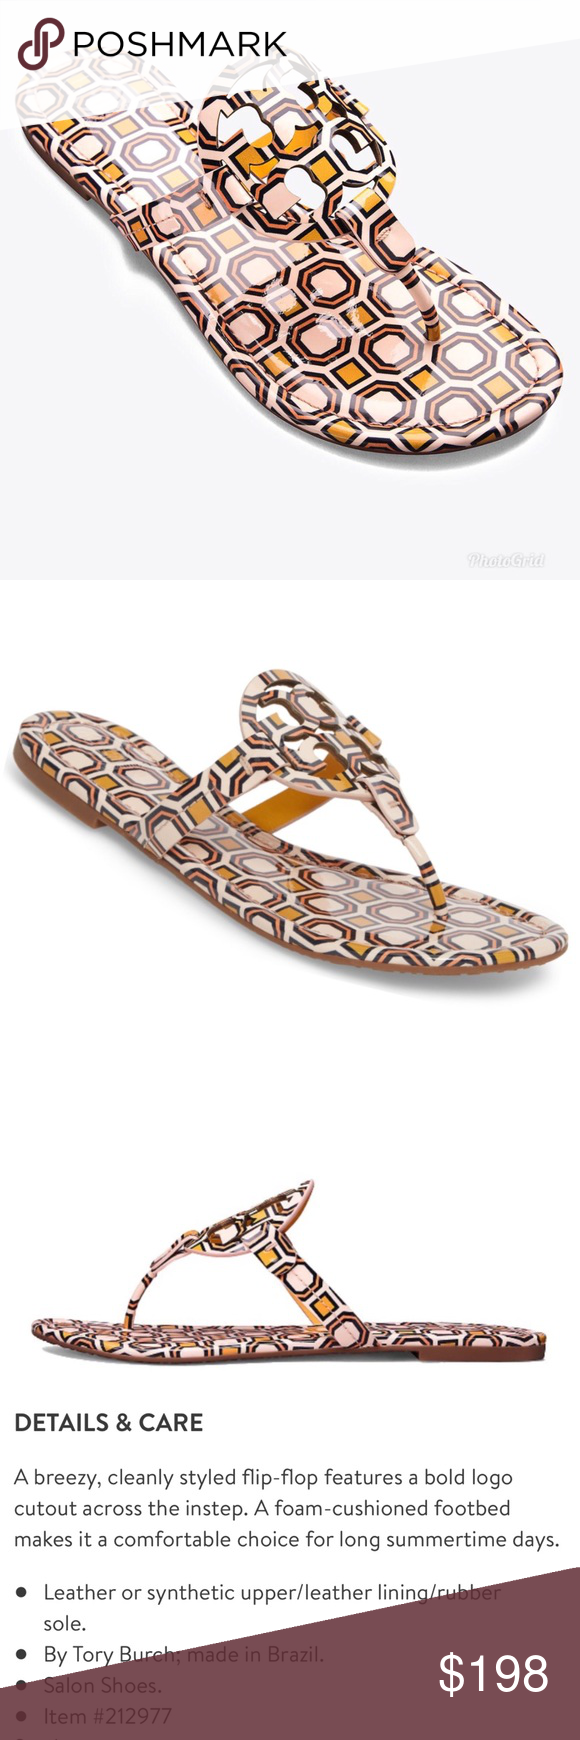 d5a5c443f7834 NWT Tory Burch Miller Flat Sandals NWT Tory Burch Miller Flat Sandals.  Color  Ballet